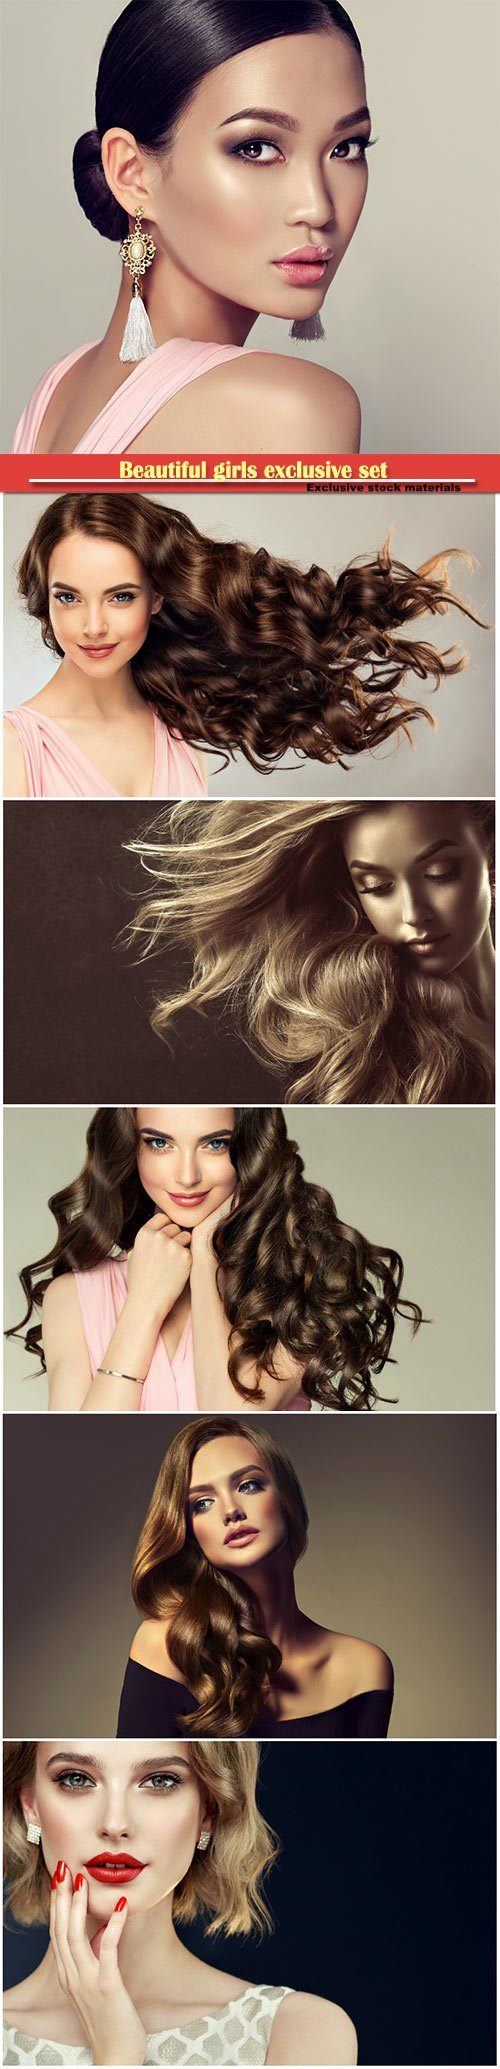 Fashion girls with makeup and beautiful hair